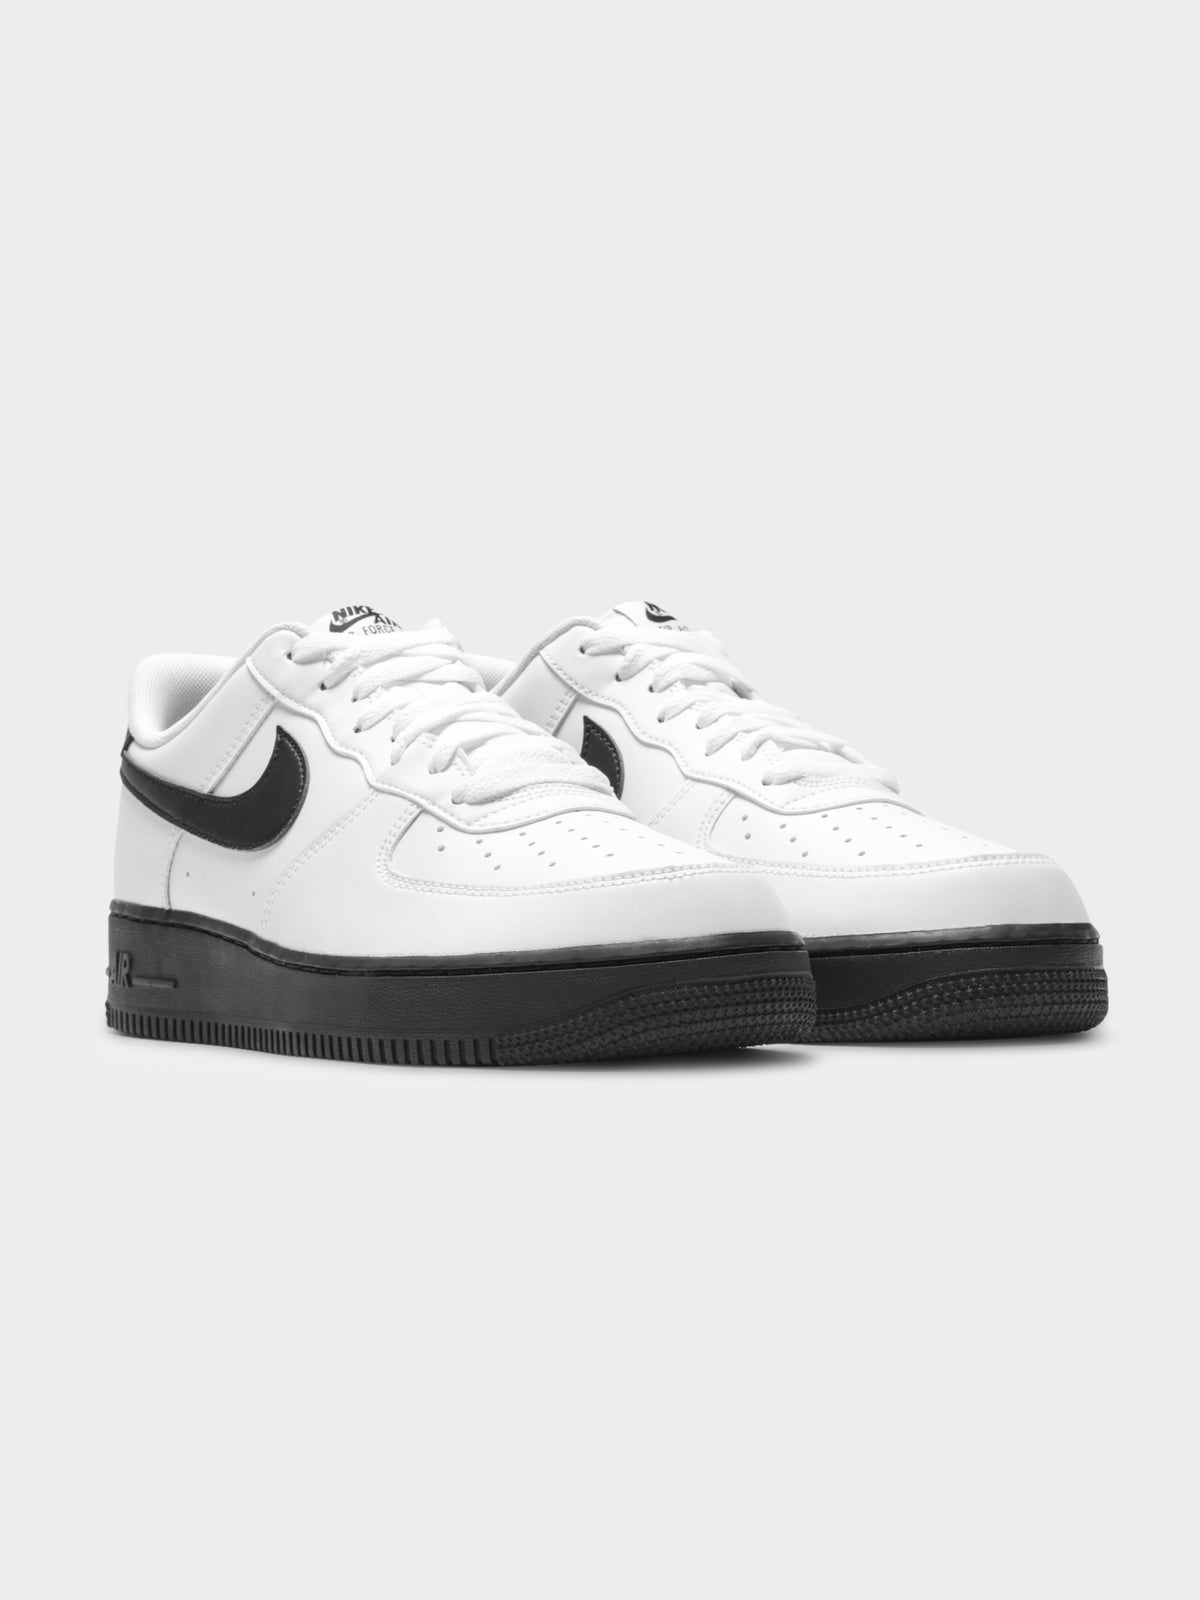 Unisex Air Force 1 '07 Sneakers in White & Black